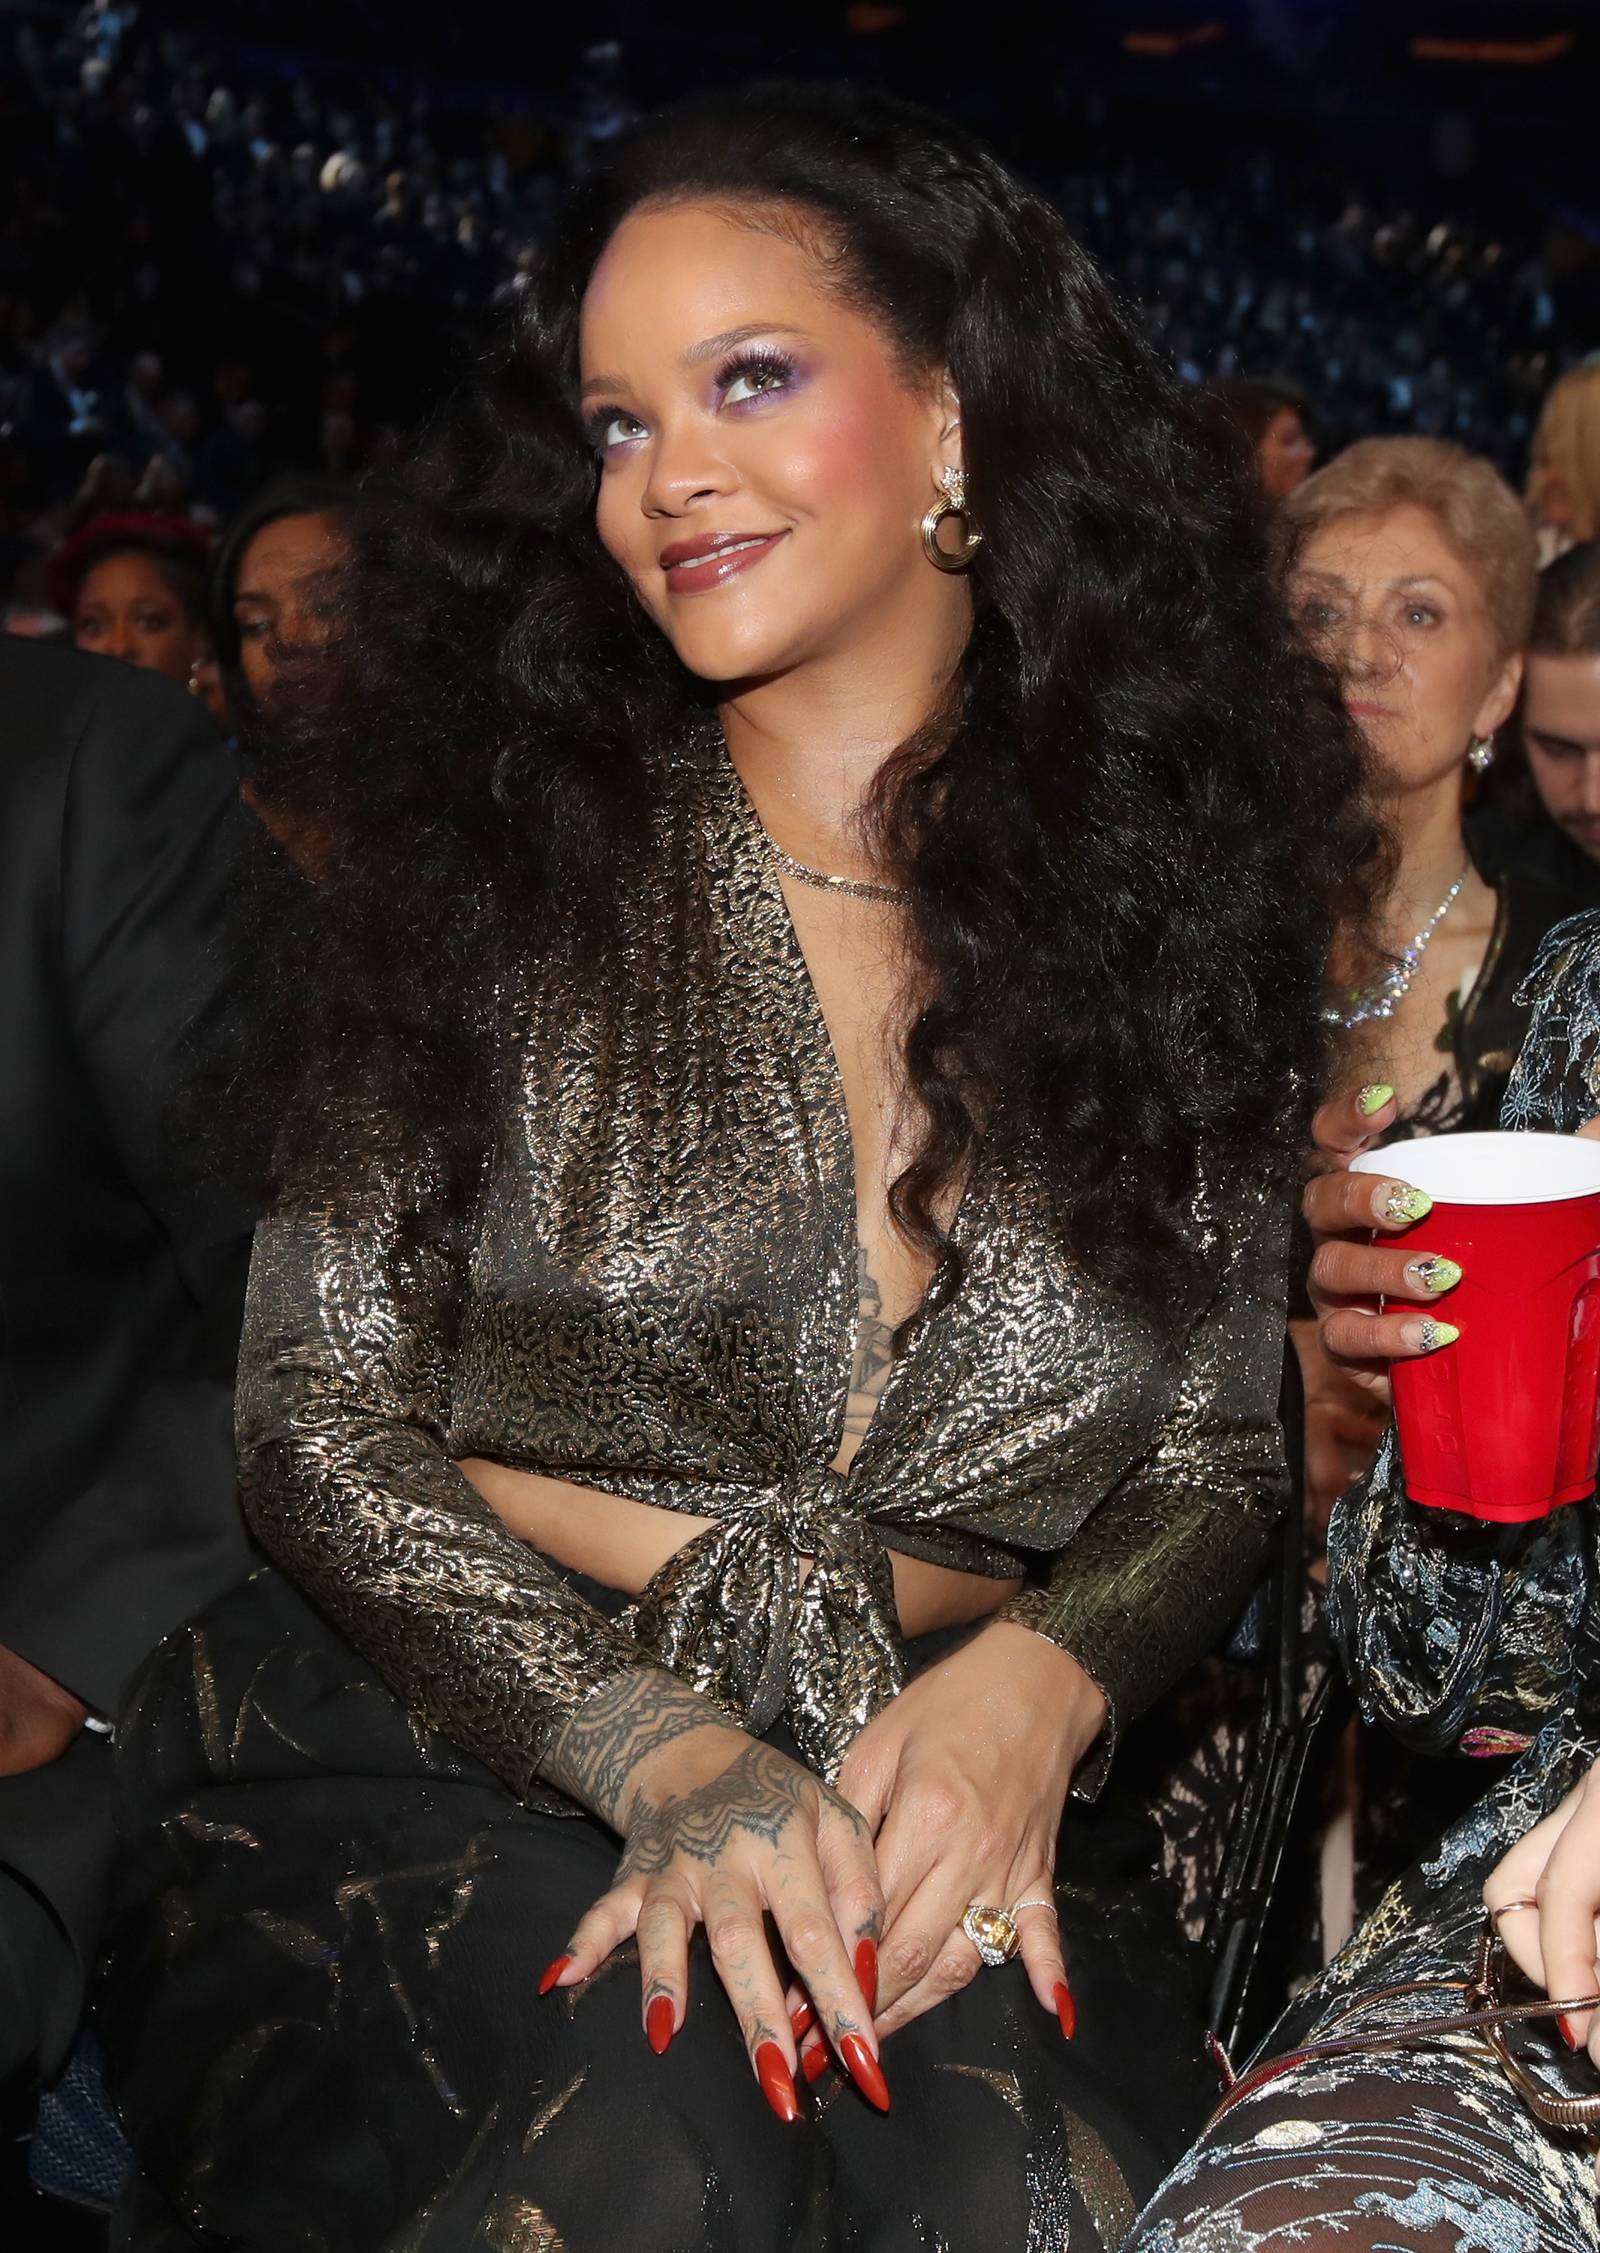 Rihanna attends the 60th annual Grammy Awards at Madison Square Garden on Jan. 28, 2018, in New York City. (Christopher Polk/Getty Images for NARAS)